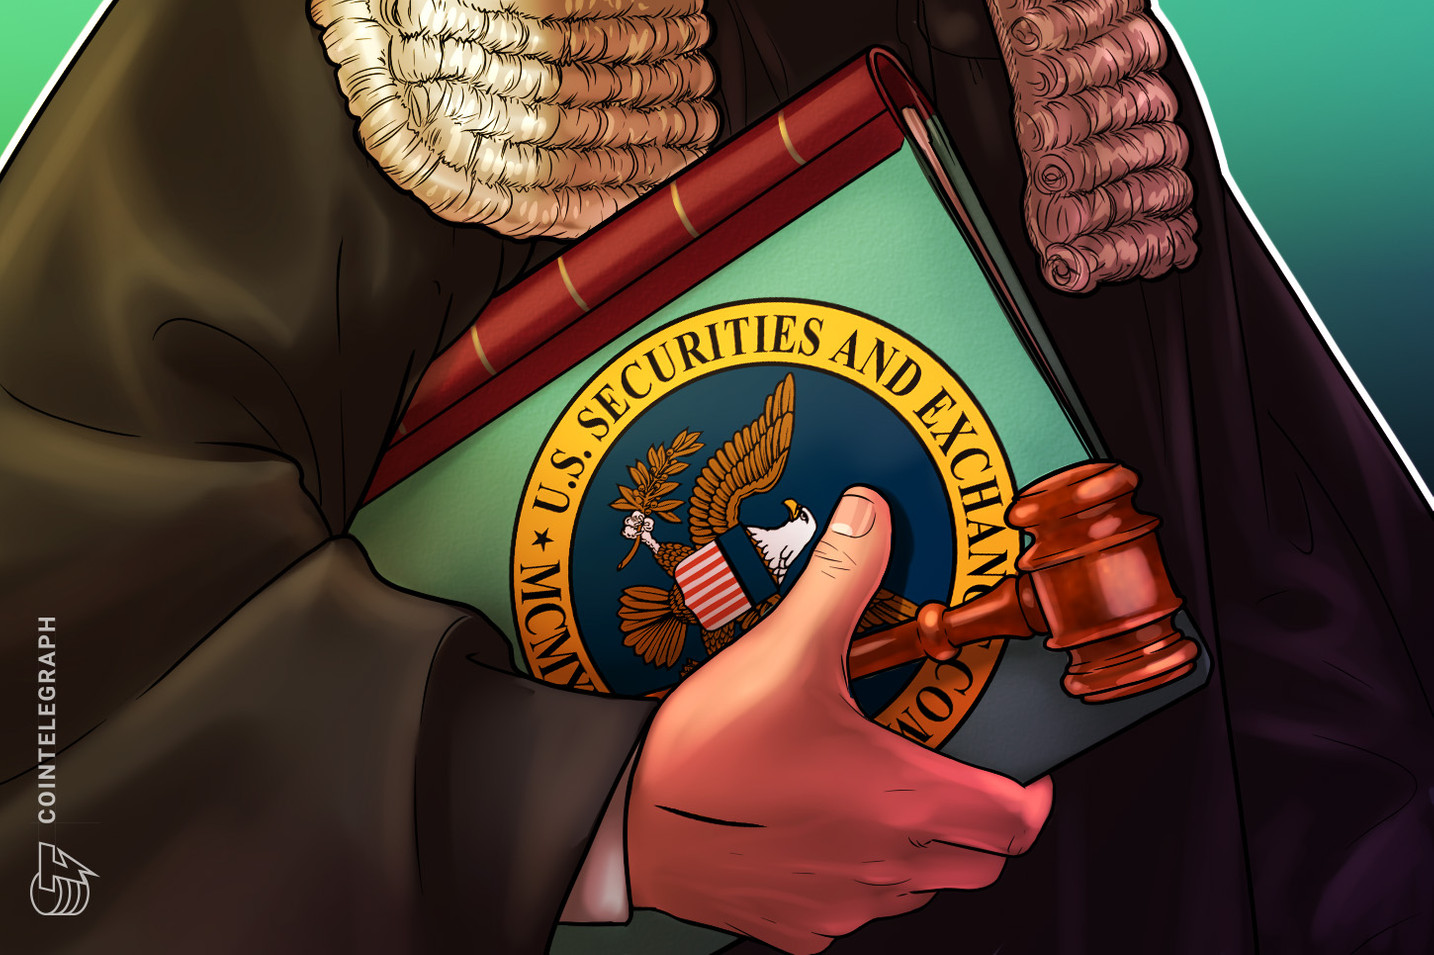 SEC brought 56 cases against crypto-related firms during Jay Clayton's tenure